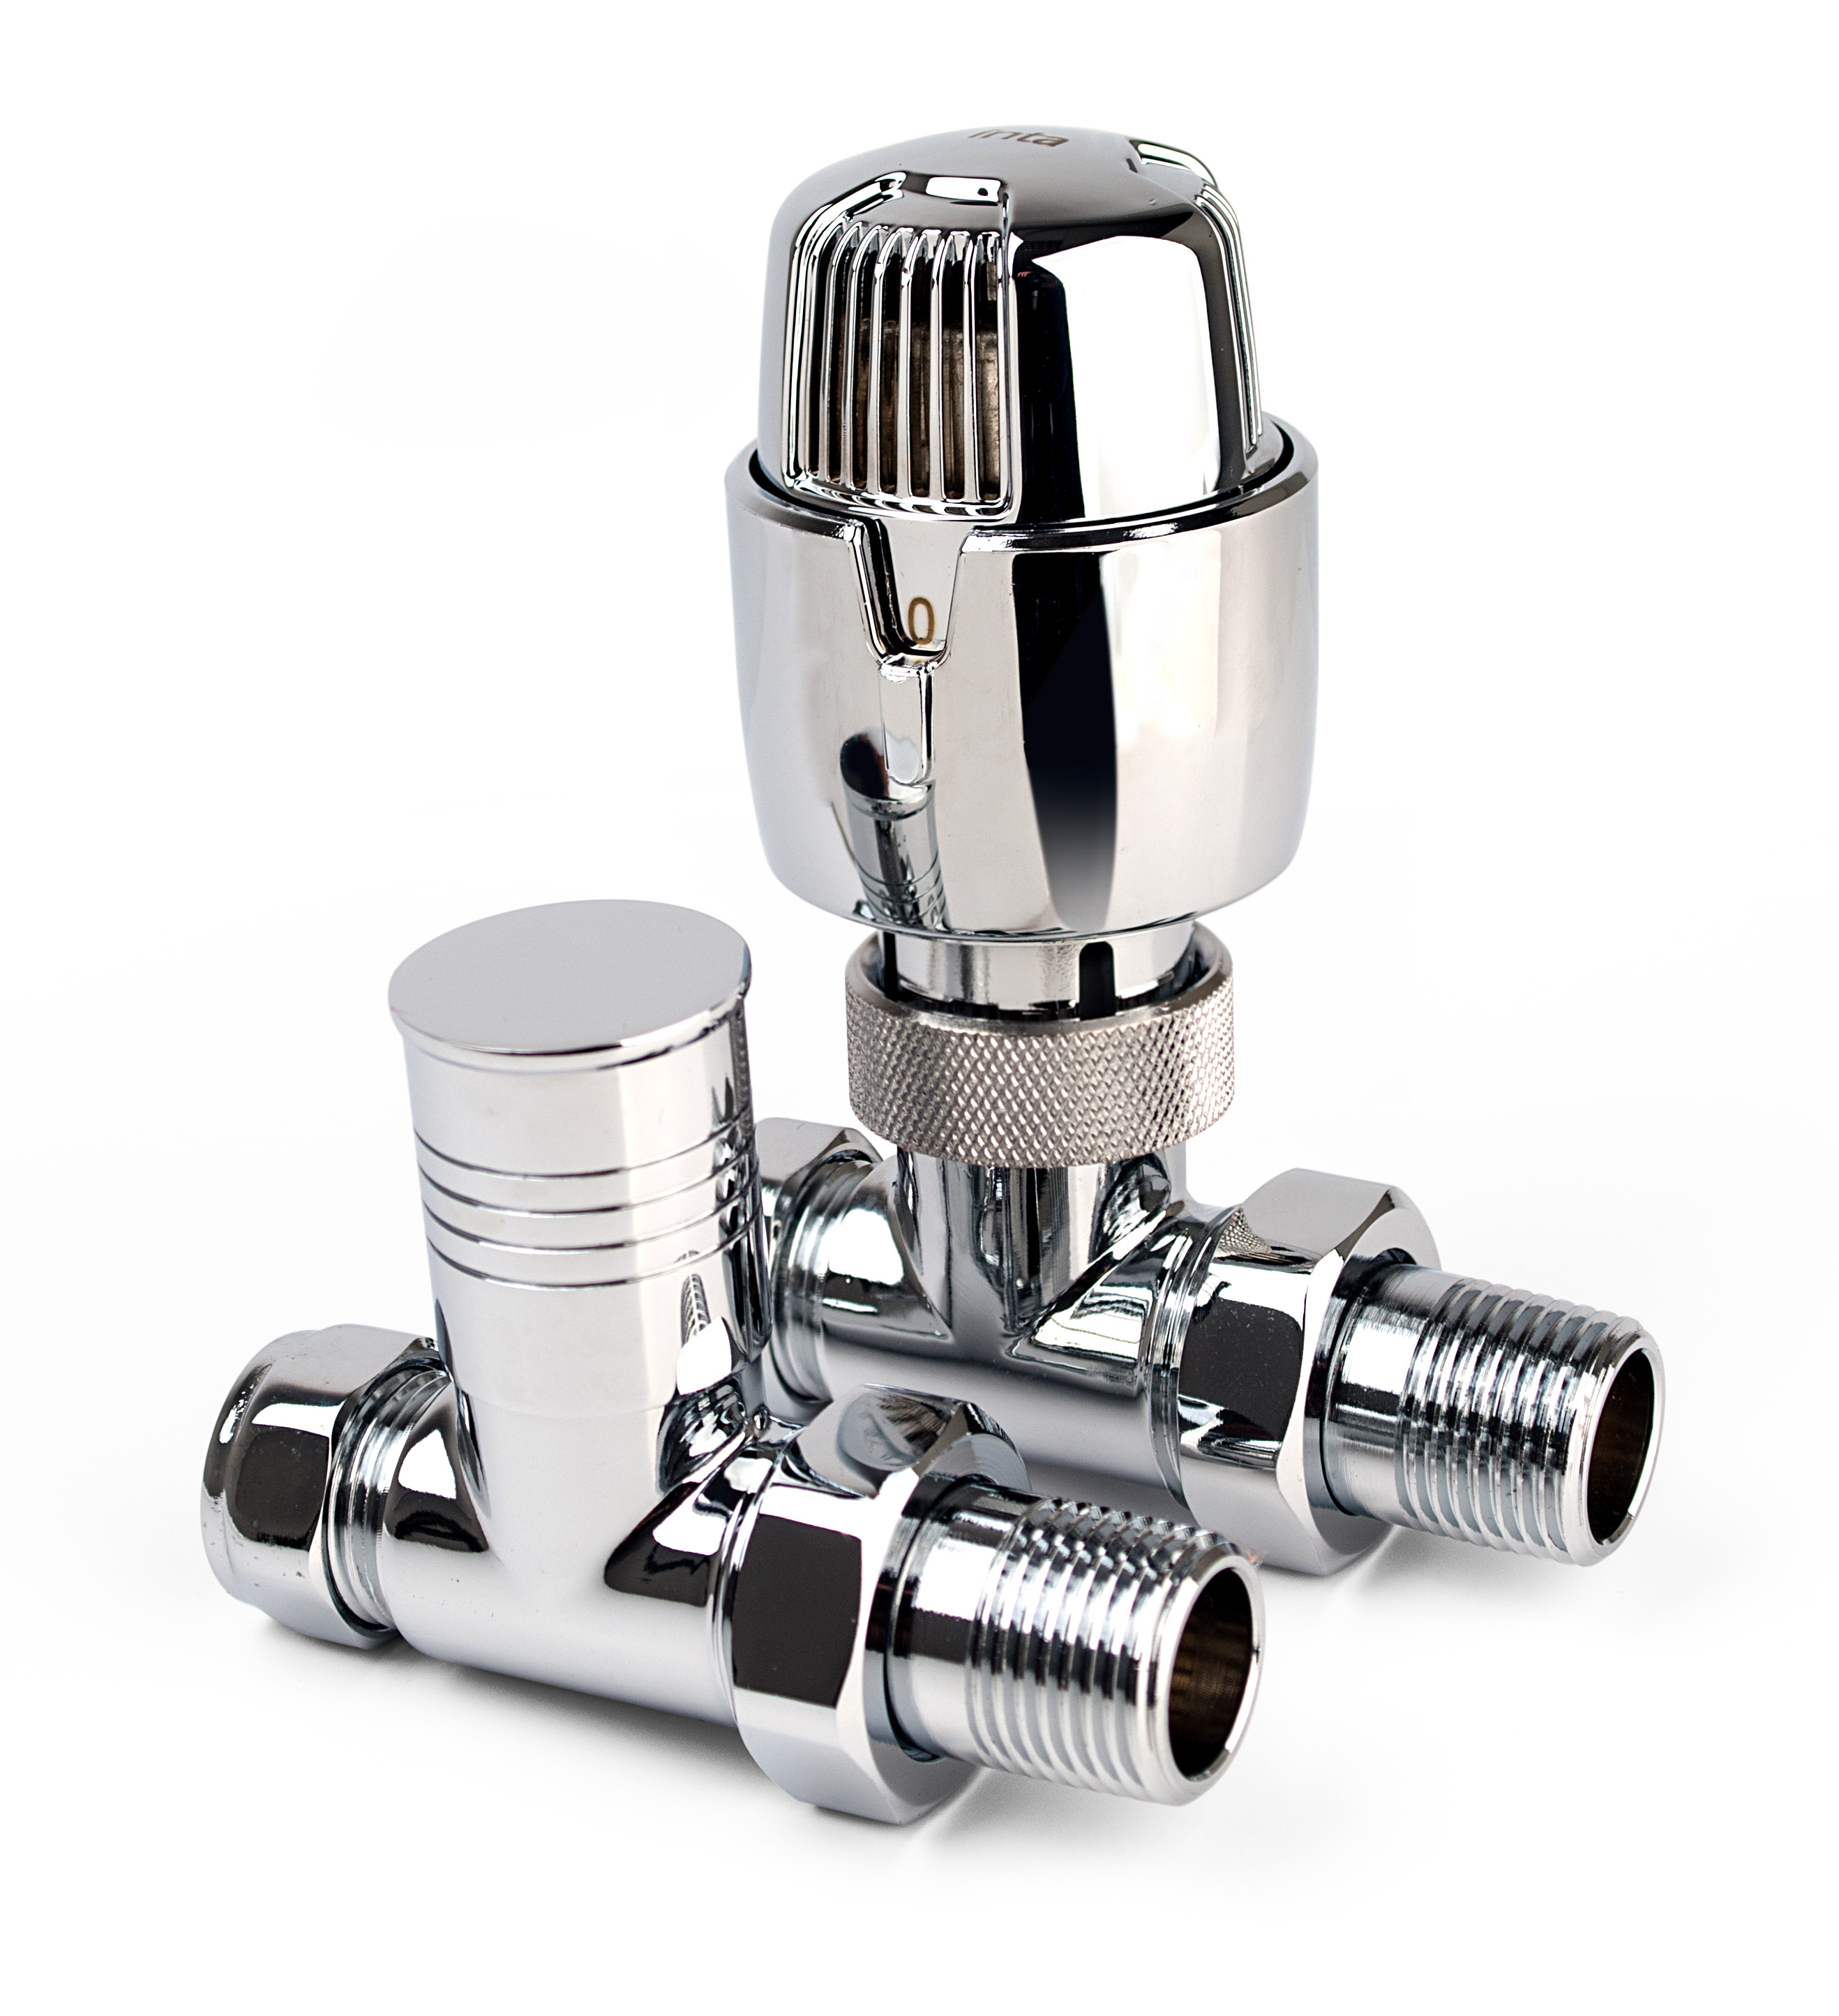 Inta i-Therm 15mm Straight High-Polished Chrome TRV Valve & Lockshield Pack